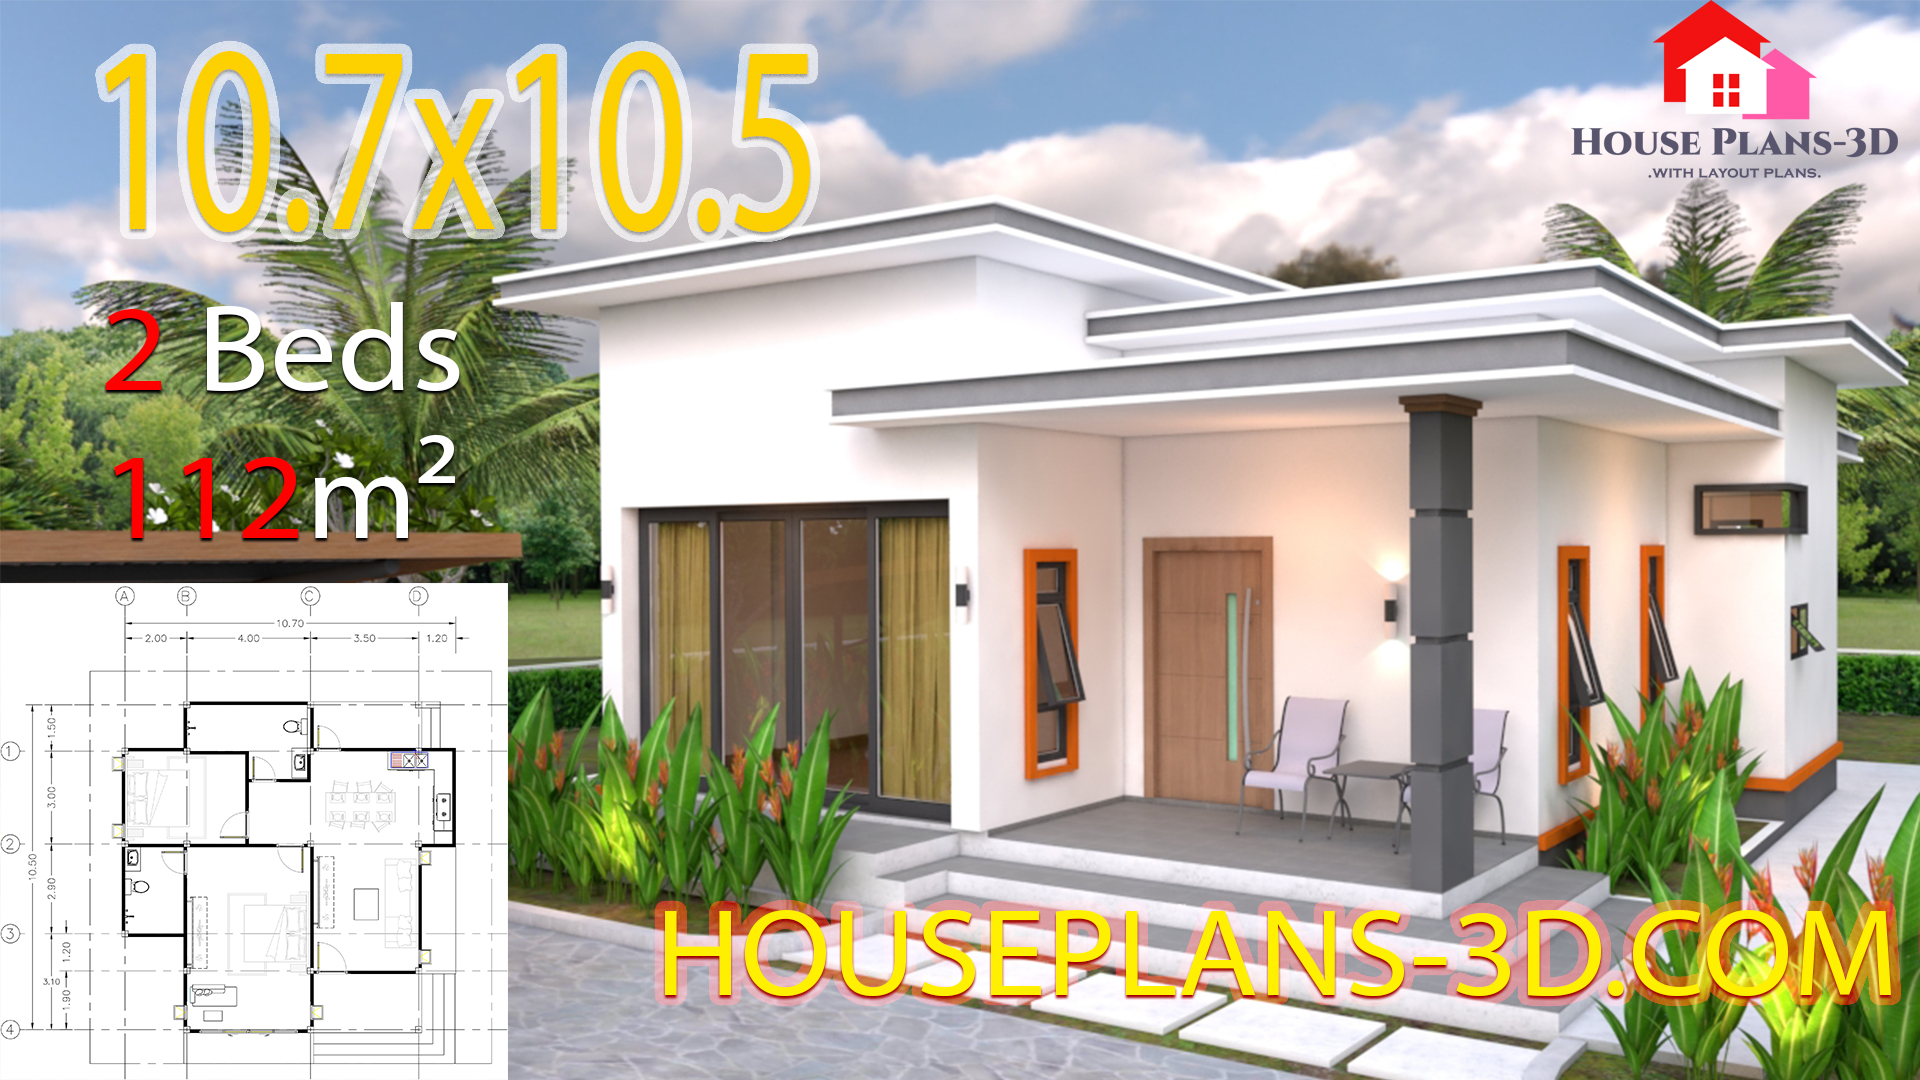 House Plans 10.7x10.5 with 2 Bedrooms Flat roof - House ...